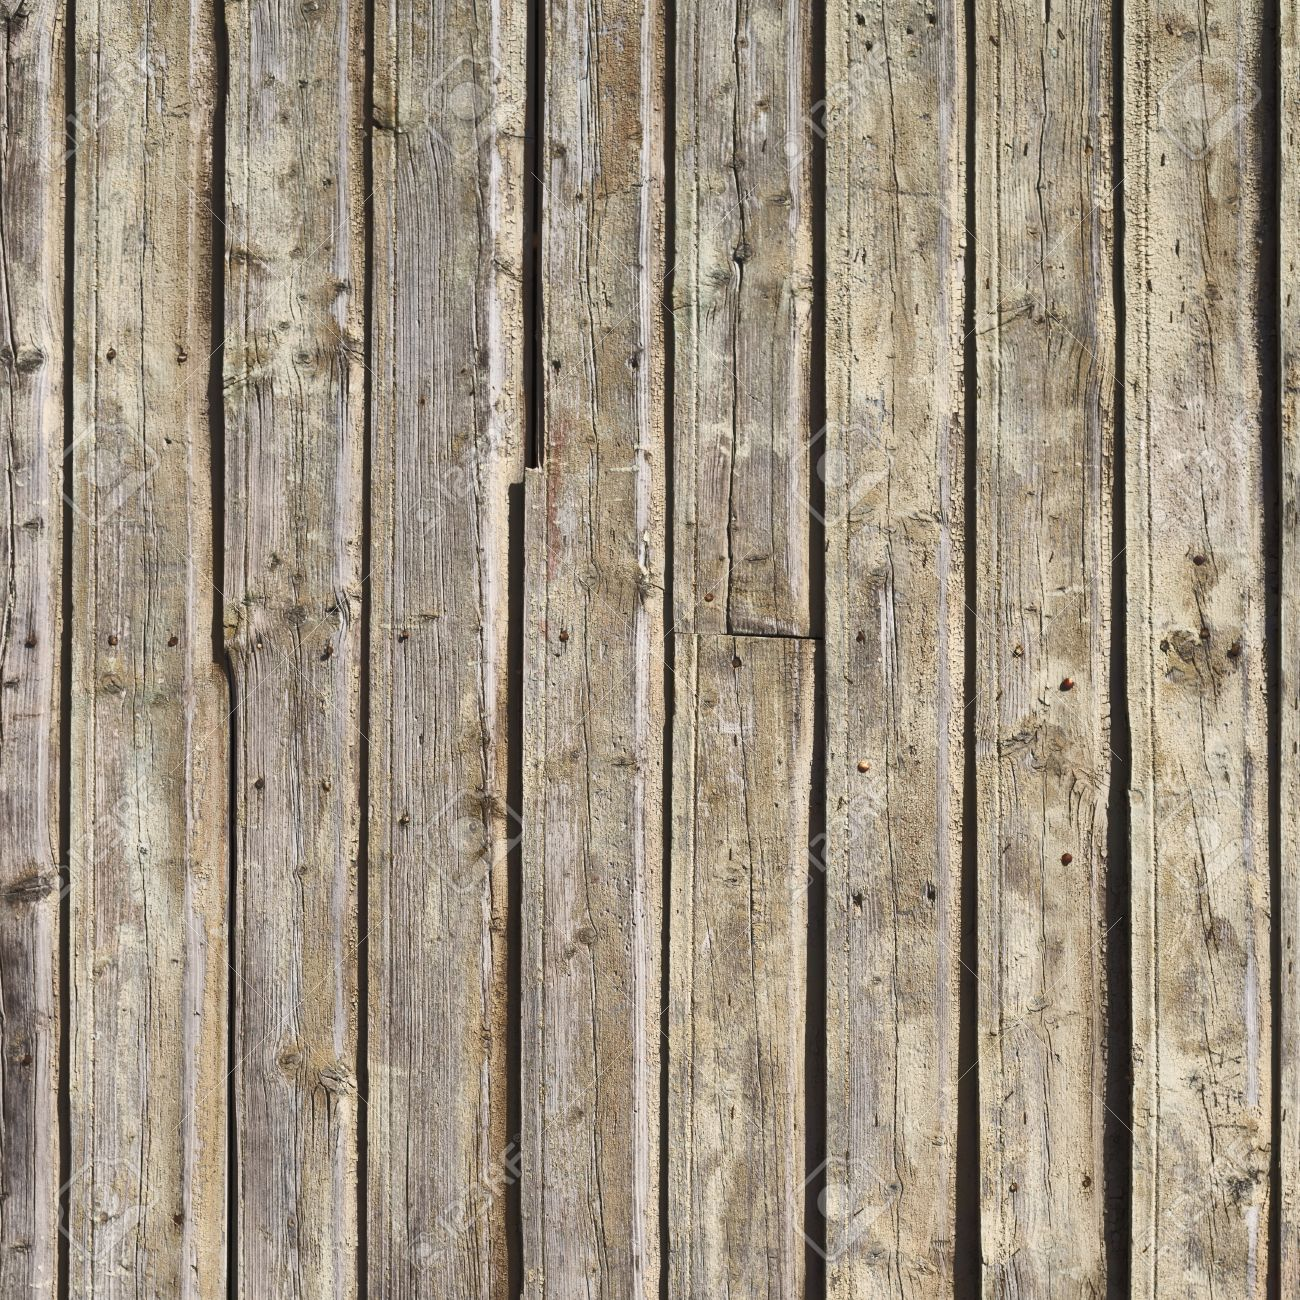 Outdoor photo of old wood plank wall surface as abstract texture background stock photo 19736834